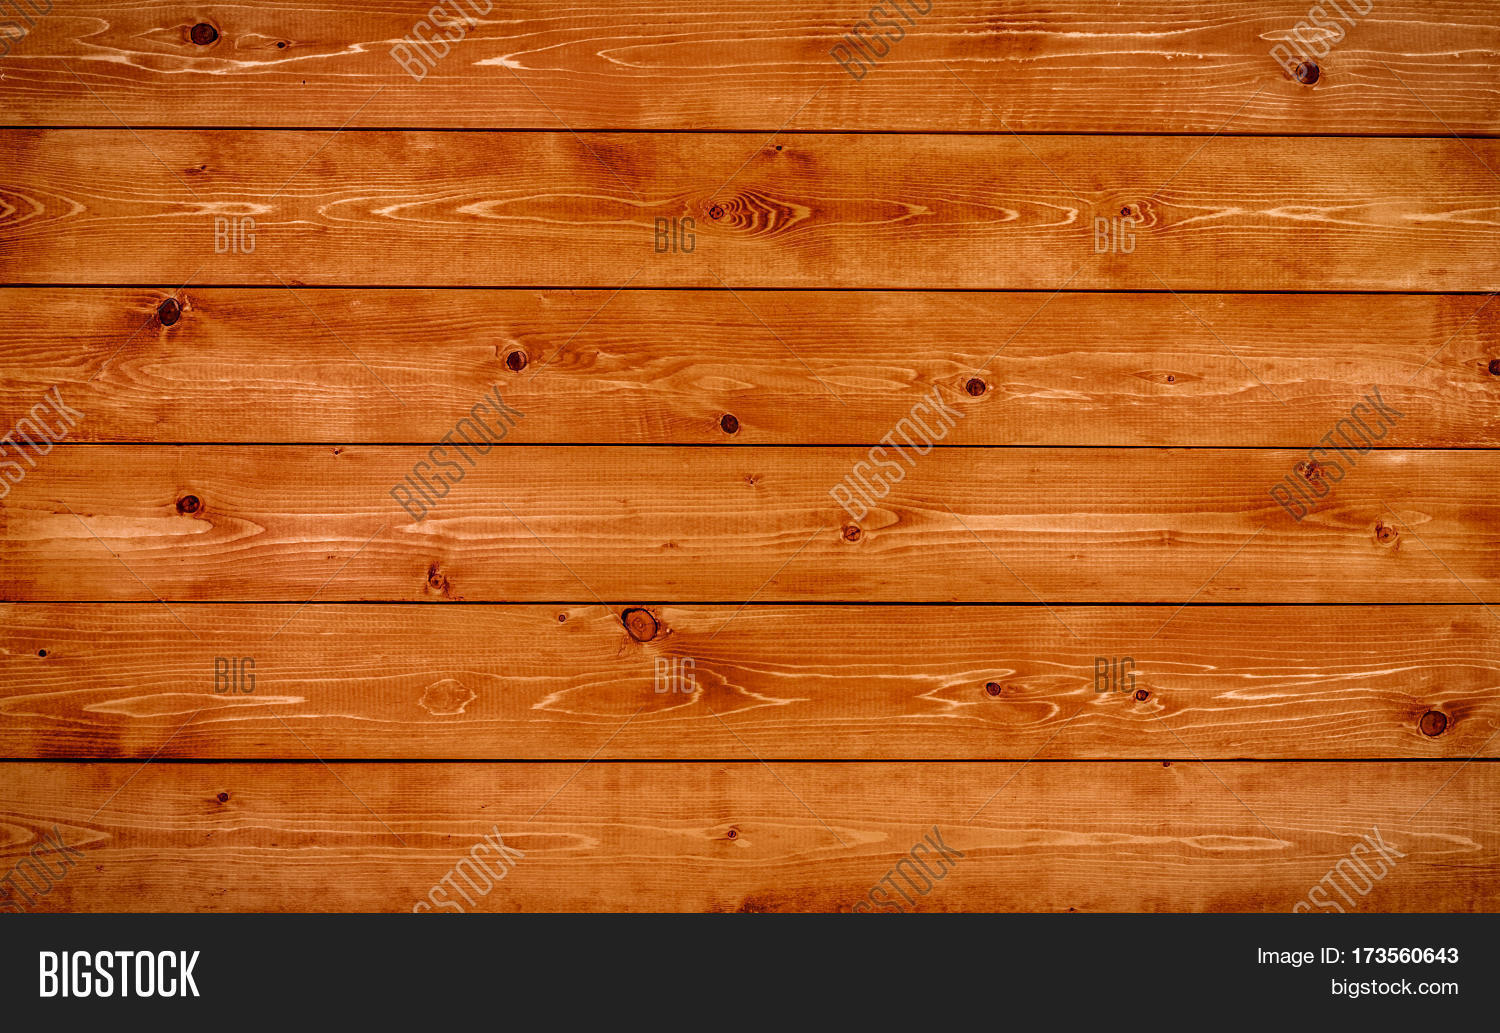 wood table surface top image photo free trial bigstock